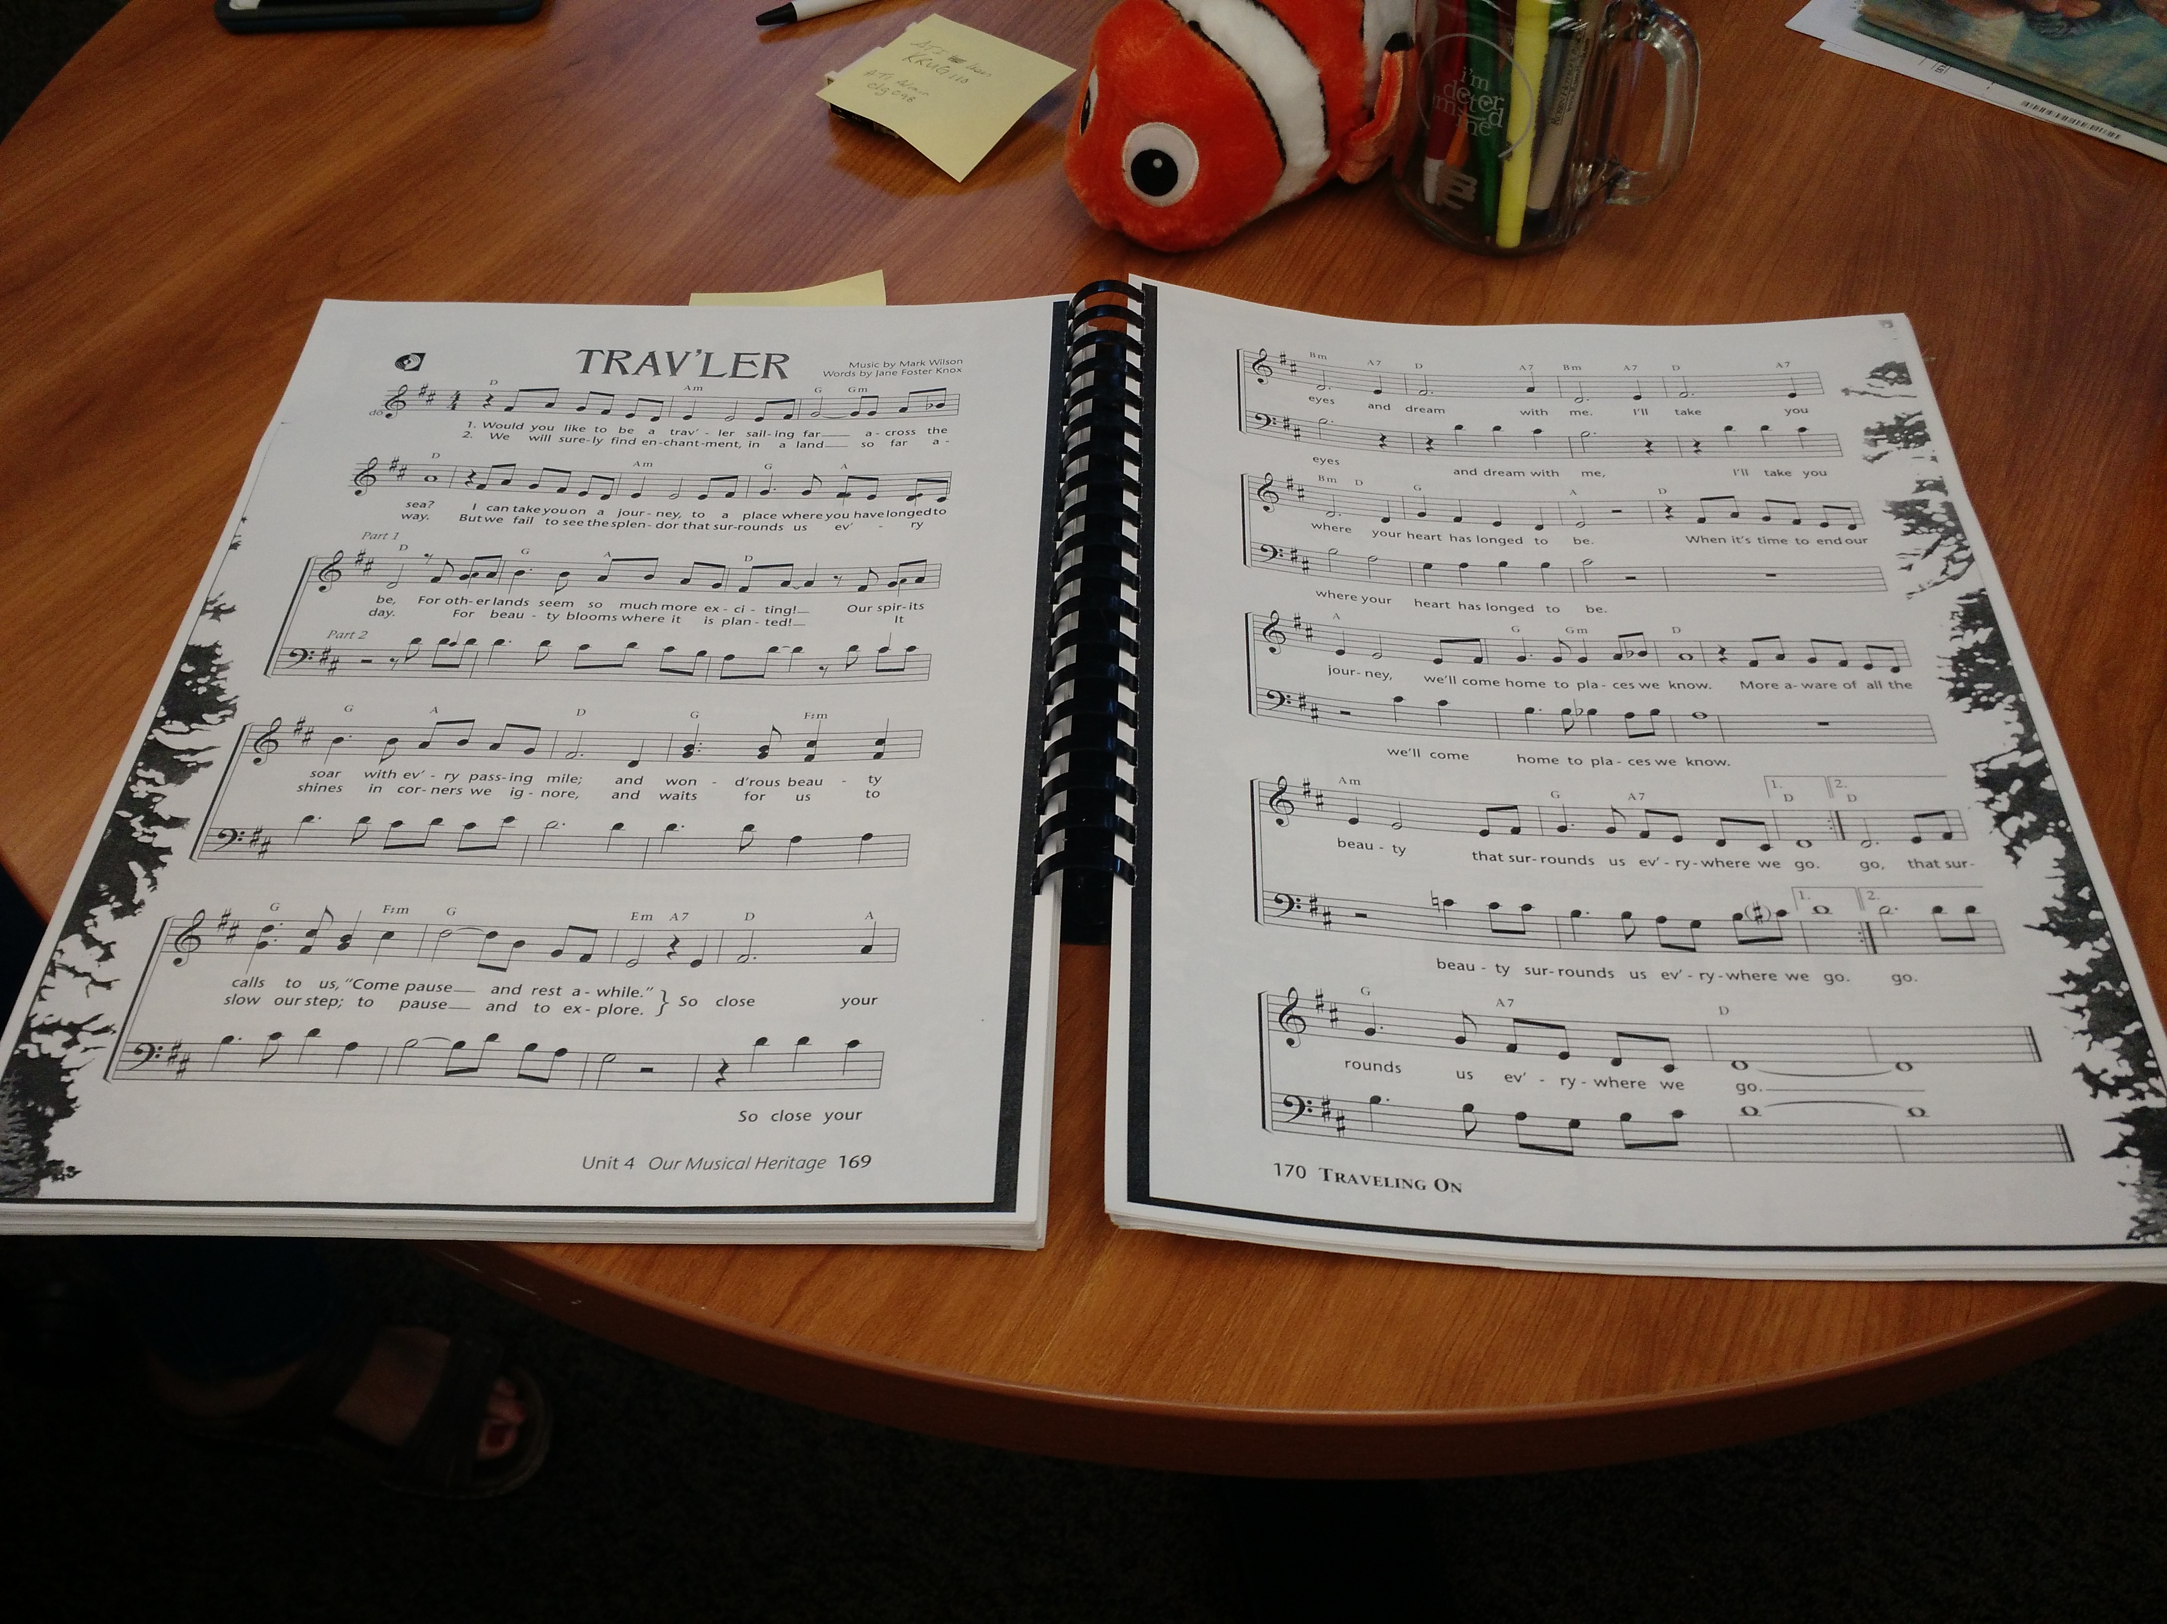 an 11x14 spiral bound book with music on a table.